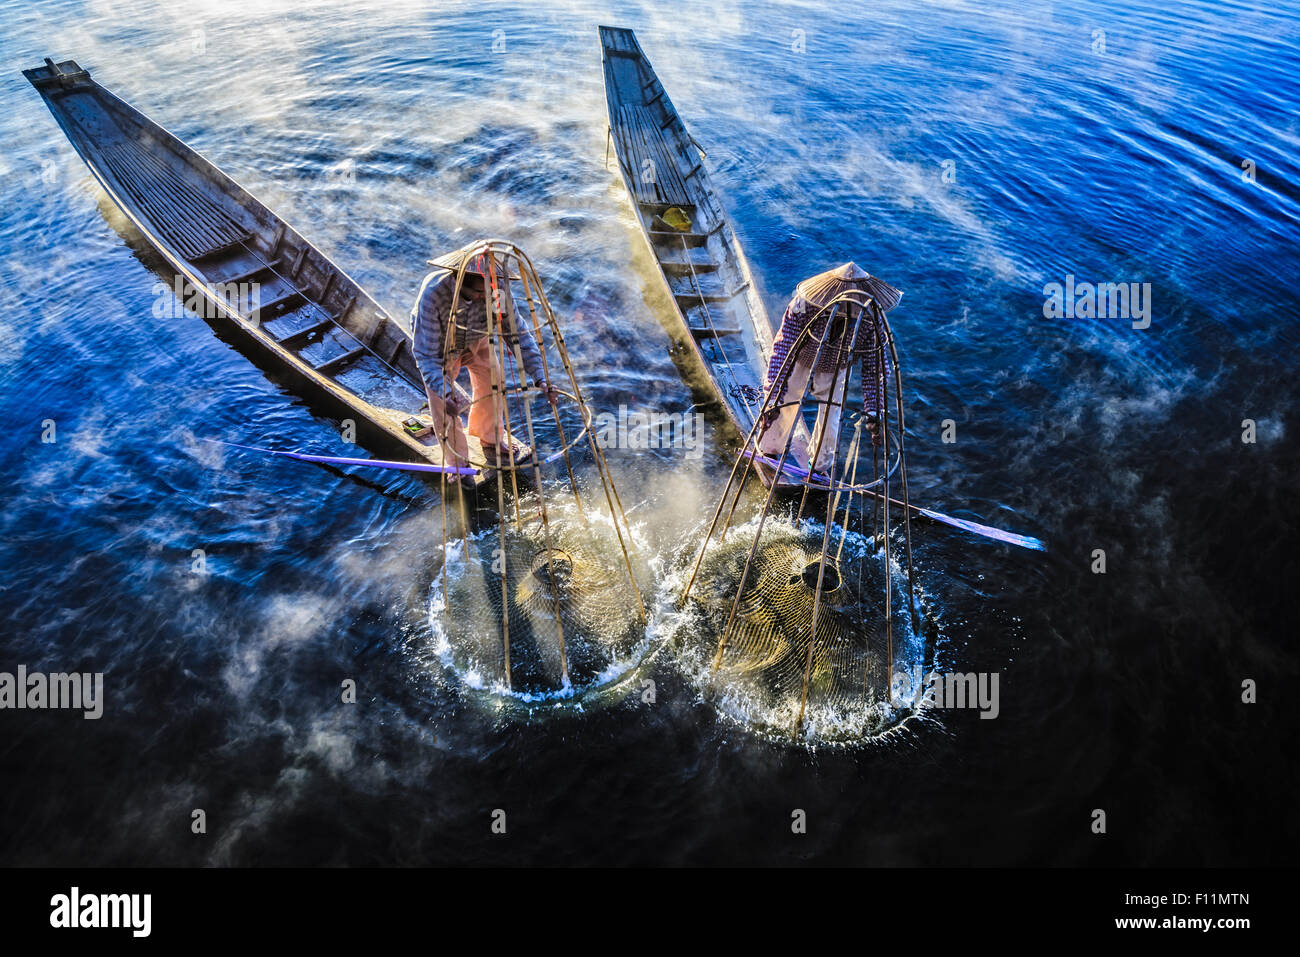 High angle view of Asian fishermen using fishing net in canoes on river - Stock Image